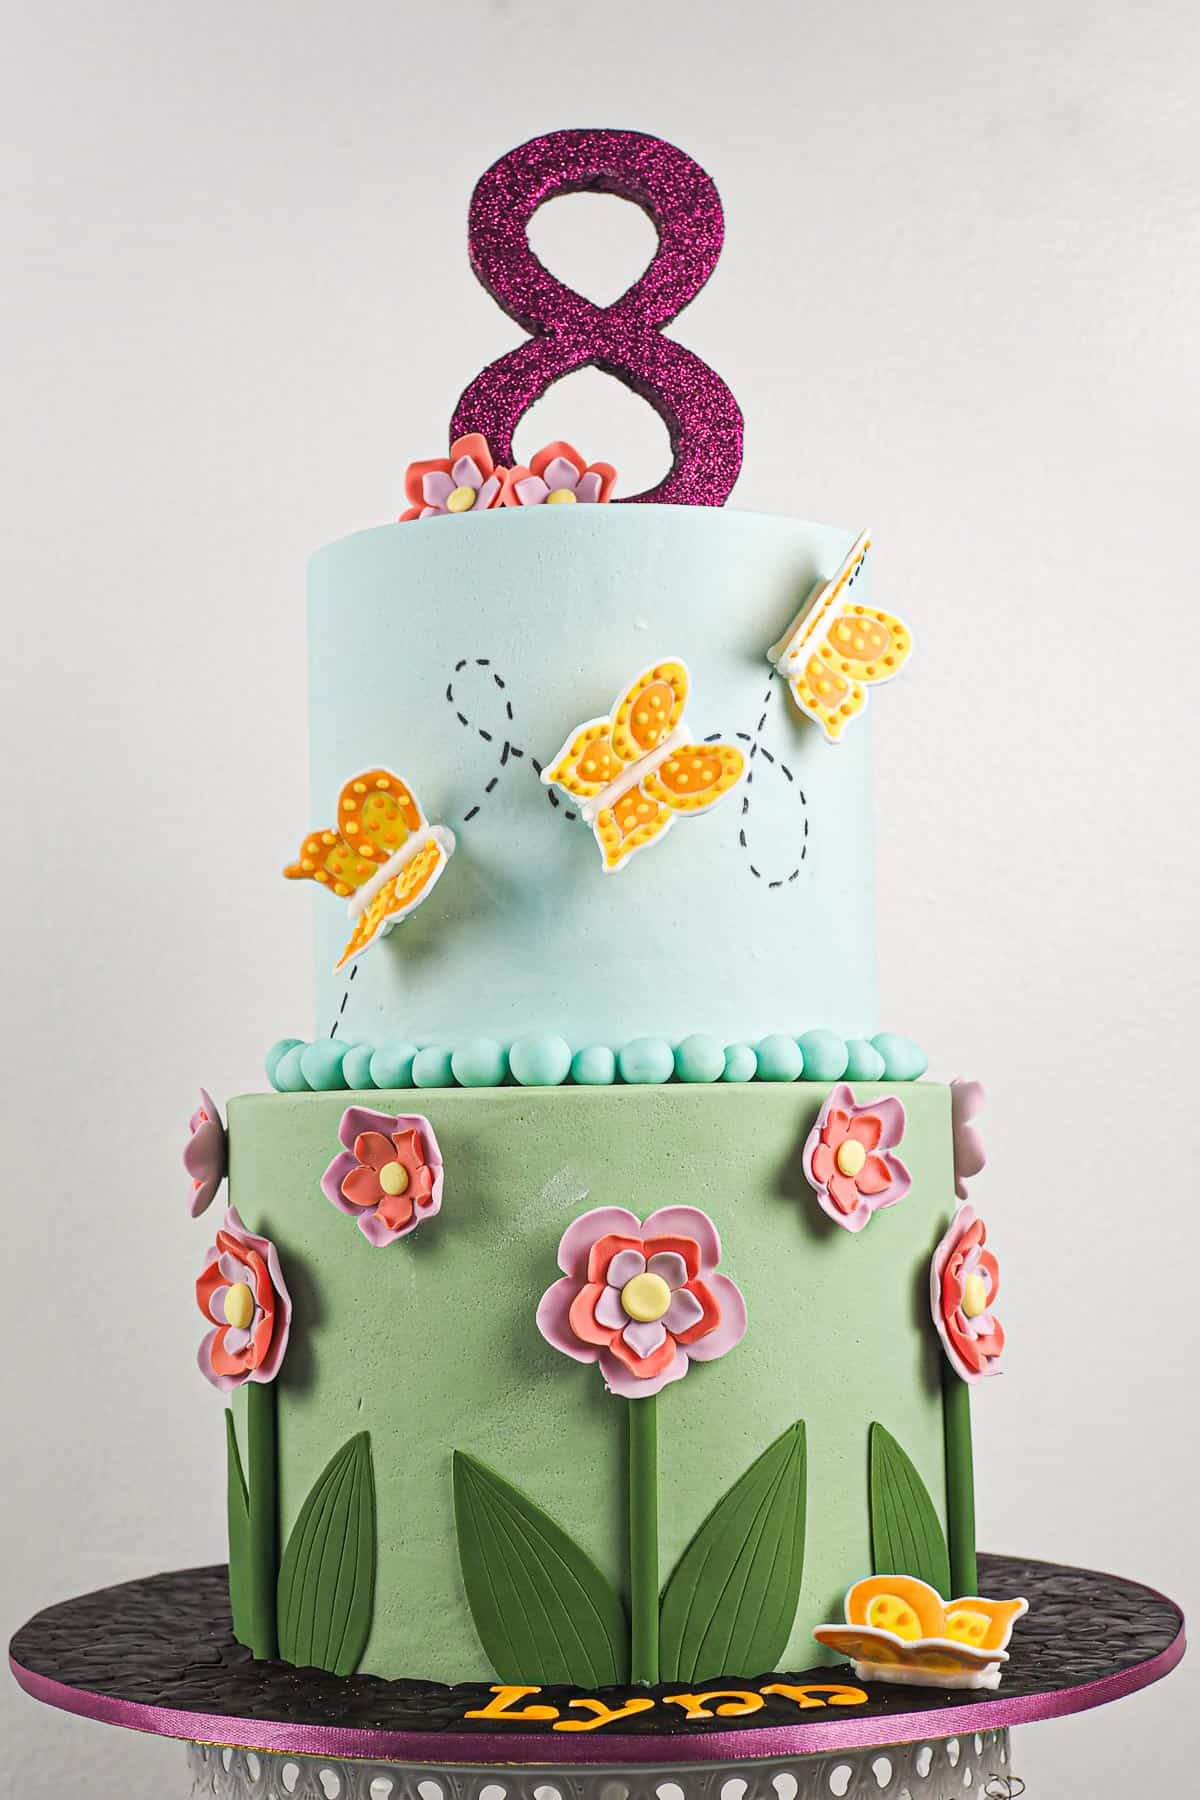 A 2 tier flowers and butterflies themed cake with royal icing butterflies and a number 8 topper